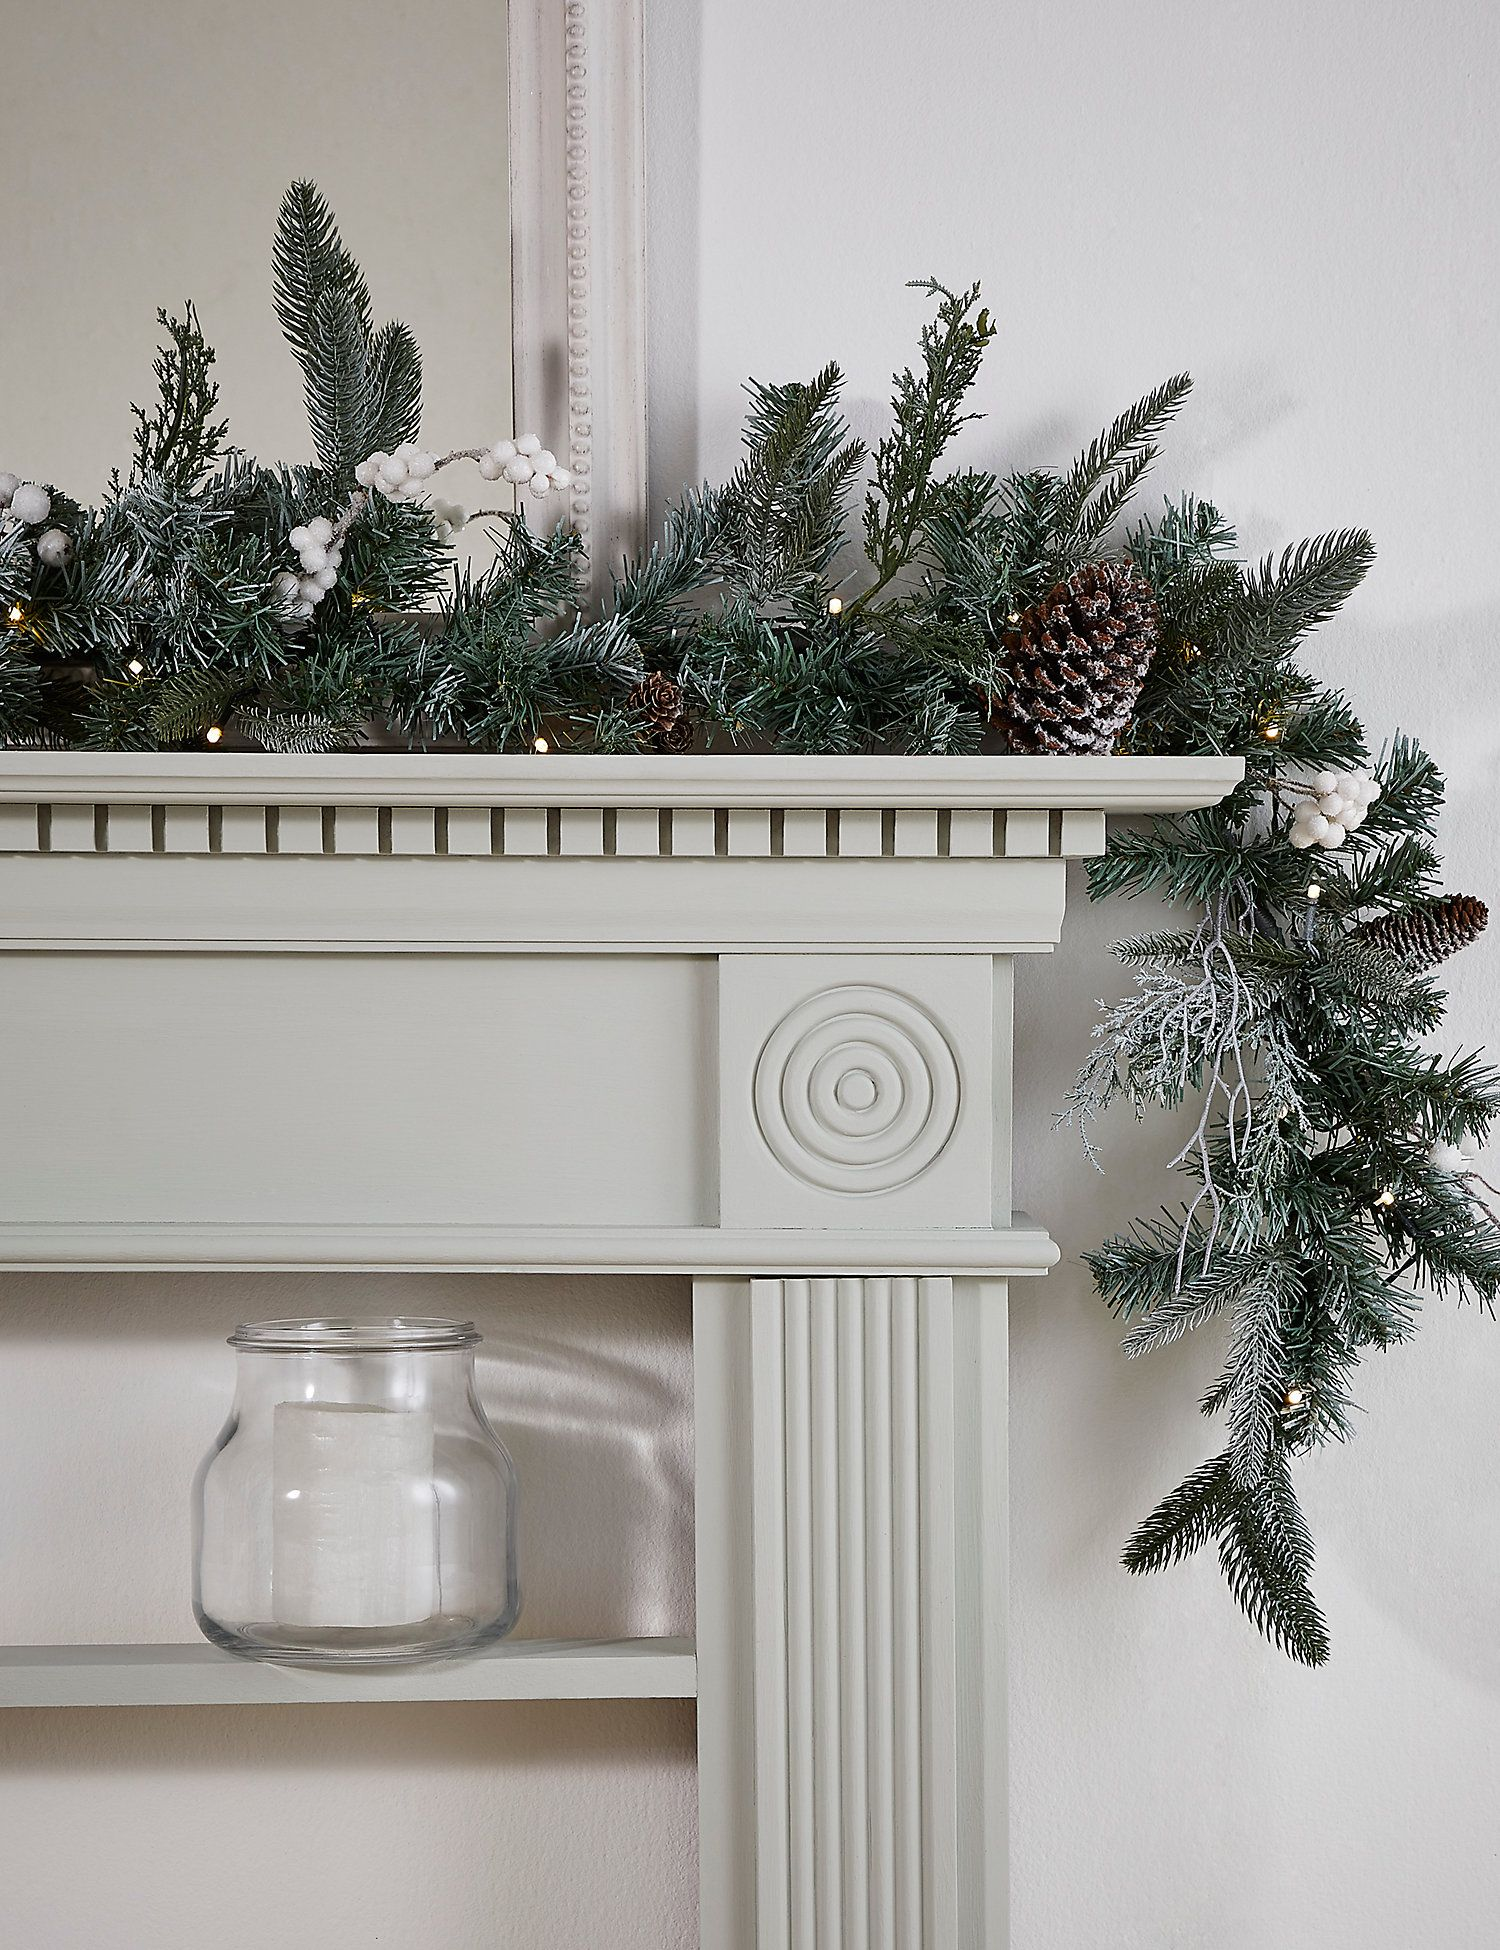 17 Christmas garlands to buy for your home